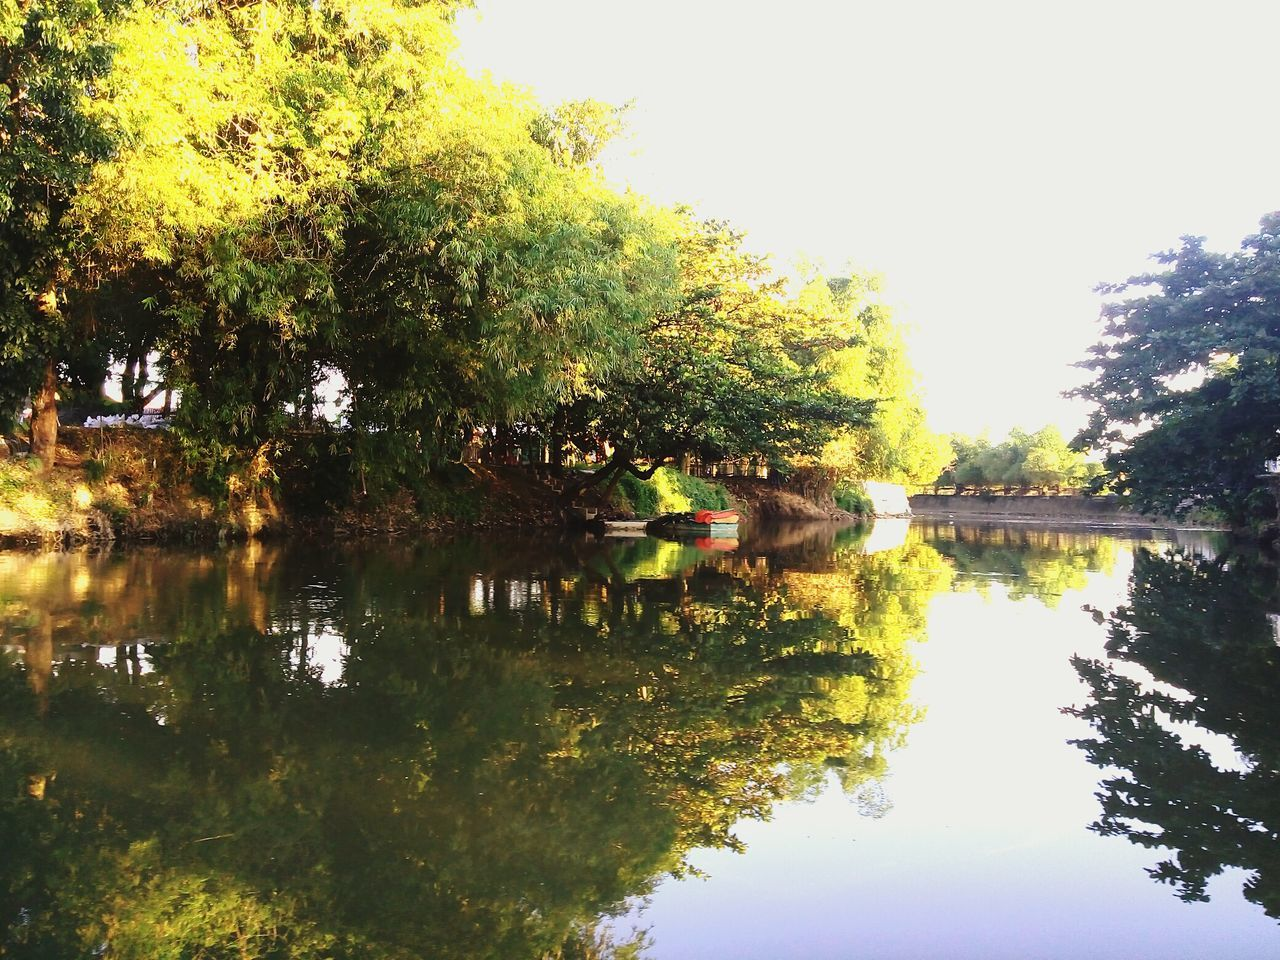 Outdoors Reflection Lake Water Lake Tree Beauty In Nature Nature Reflection Philippines <3 Las Piñas City PhonePhotography